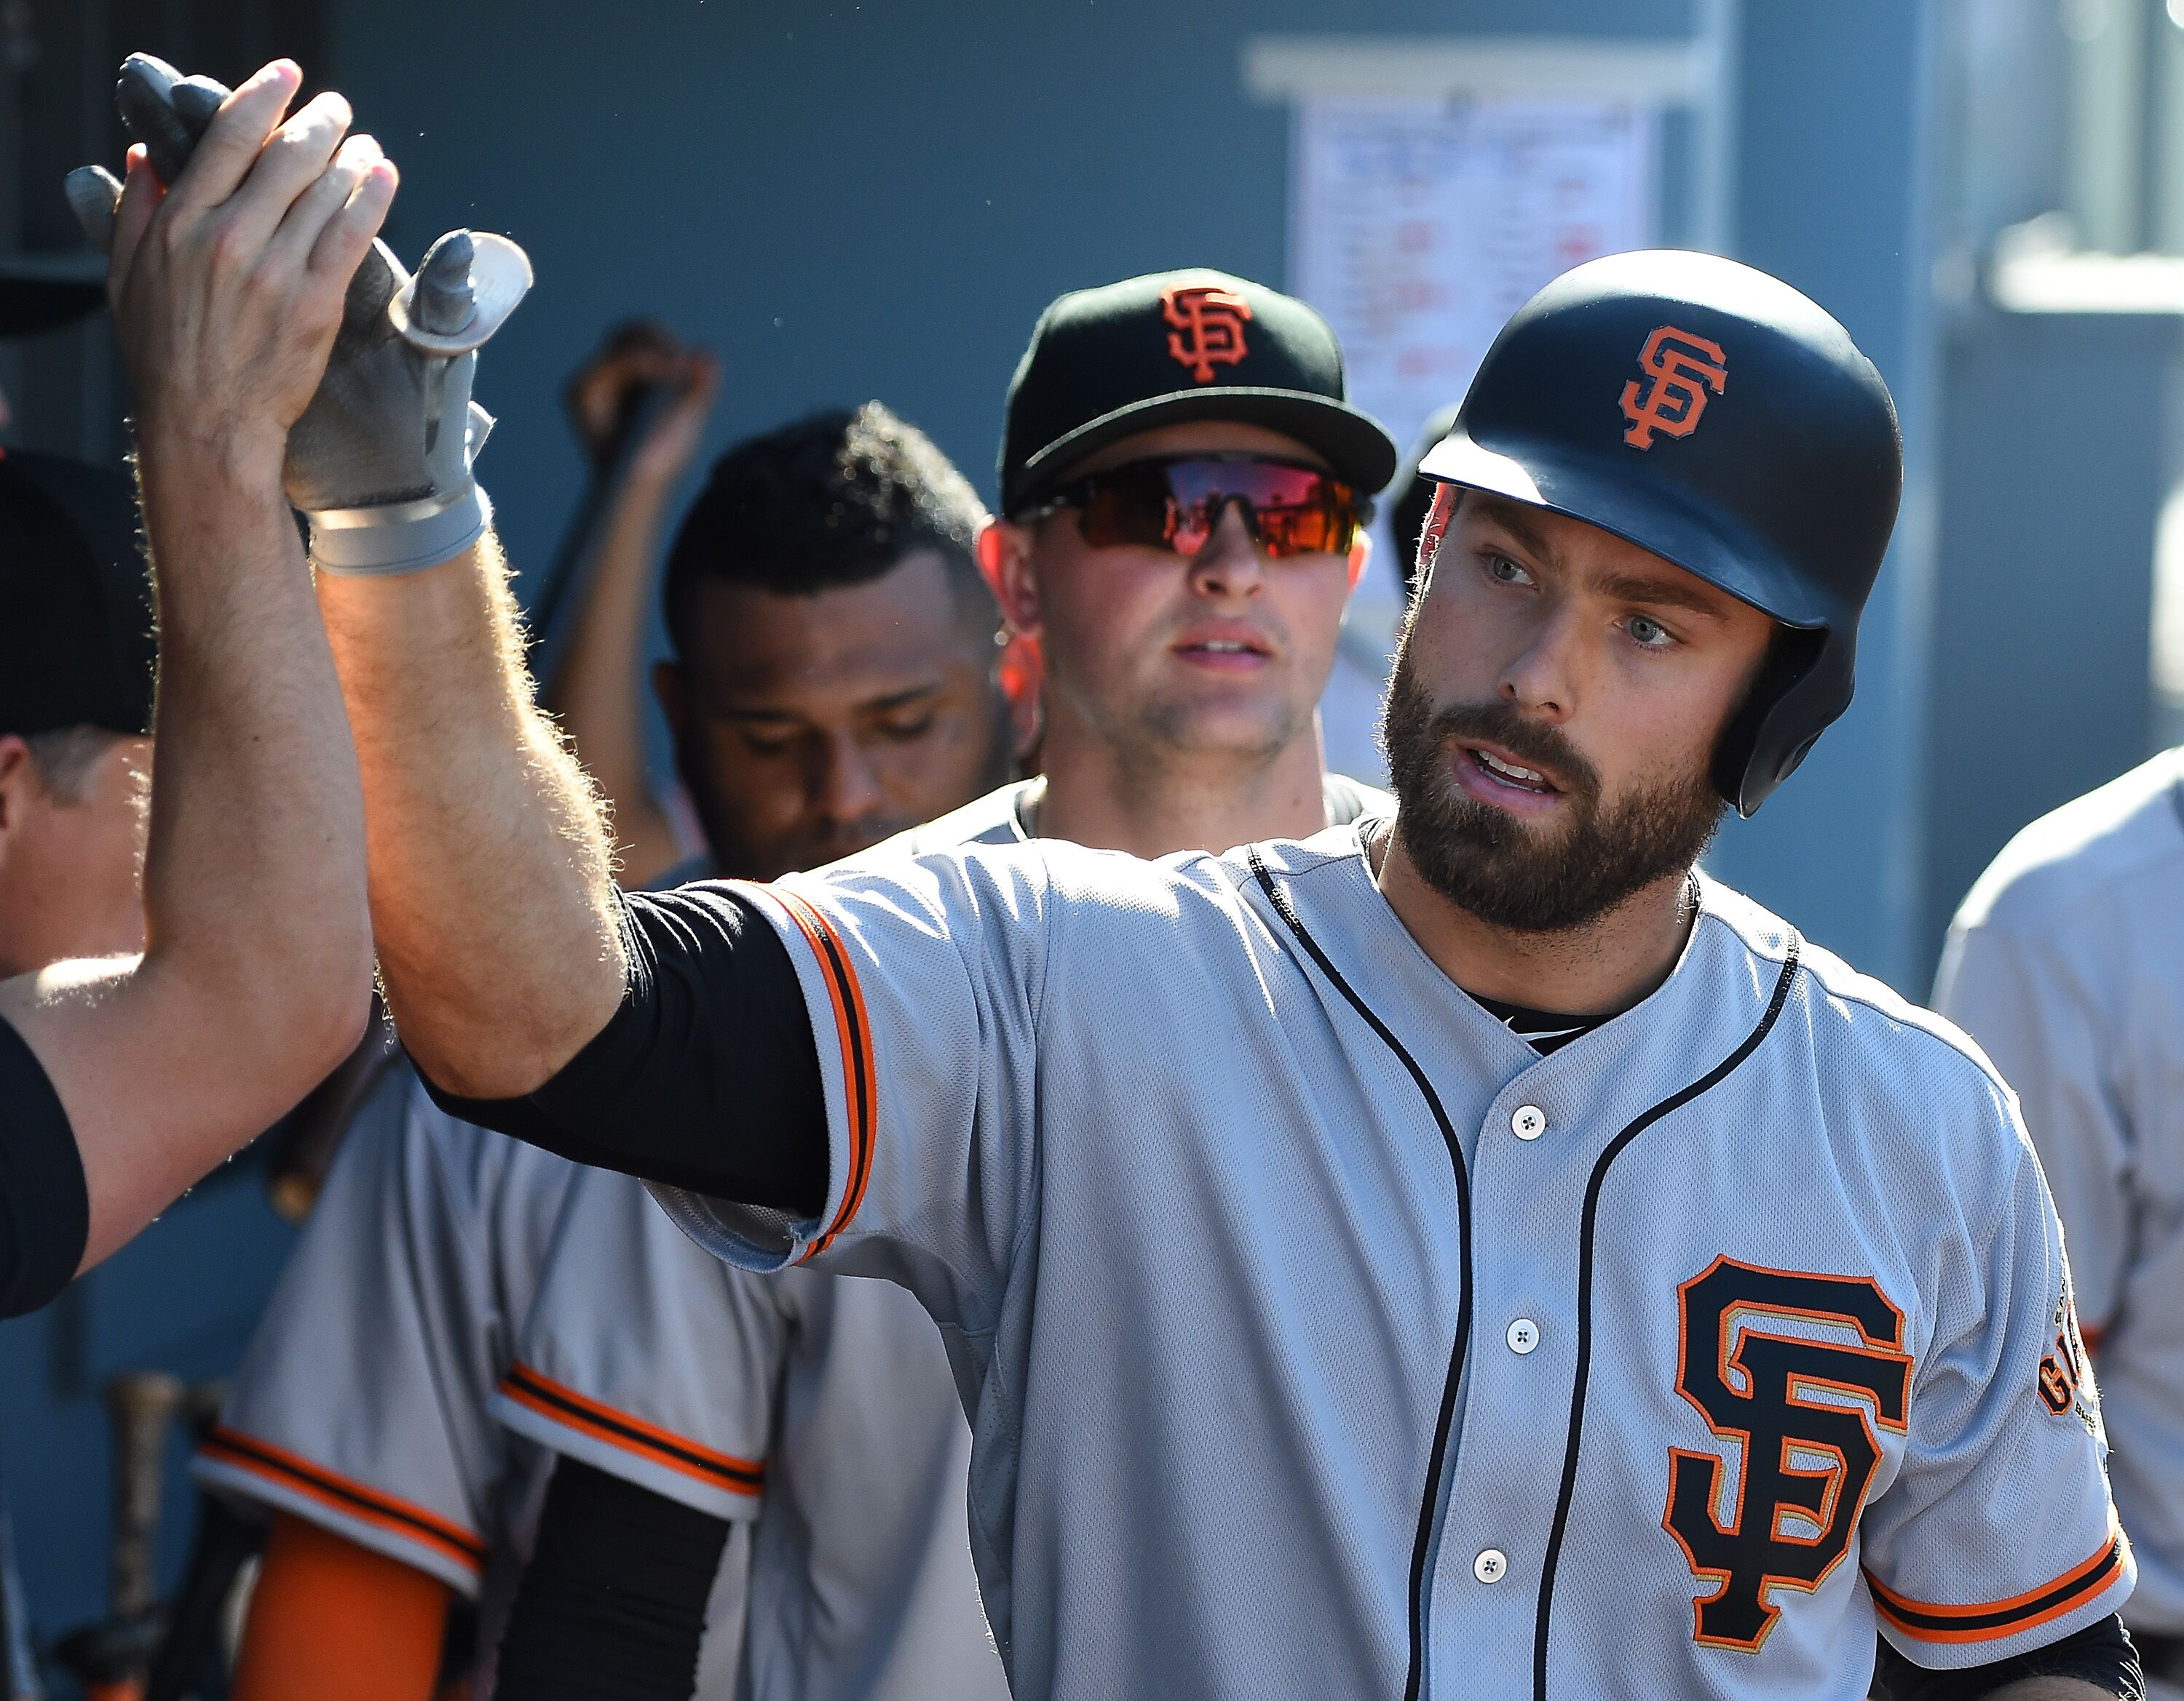 San Francisco Giants 3 Up, 3 Down: Last Meeting with LA